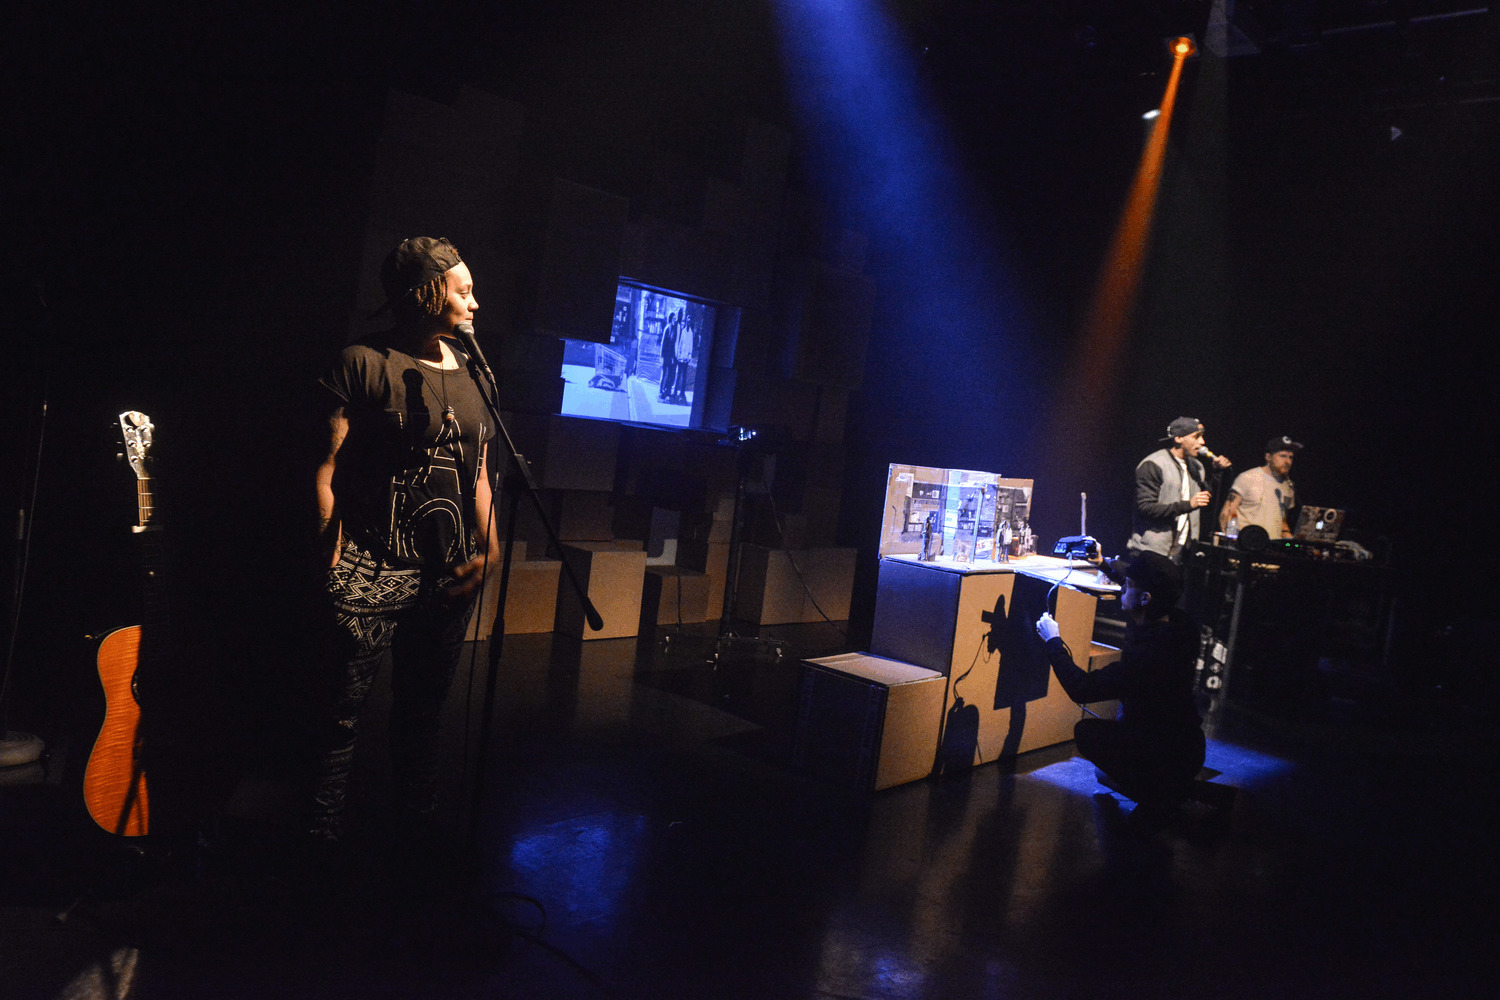 Three performers stand on stage at mics in a gig setting. there are cardboard boxes in the background and atmospheric lighting